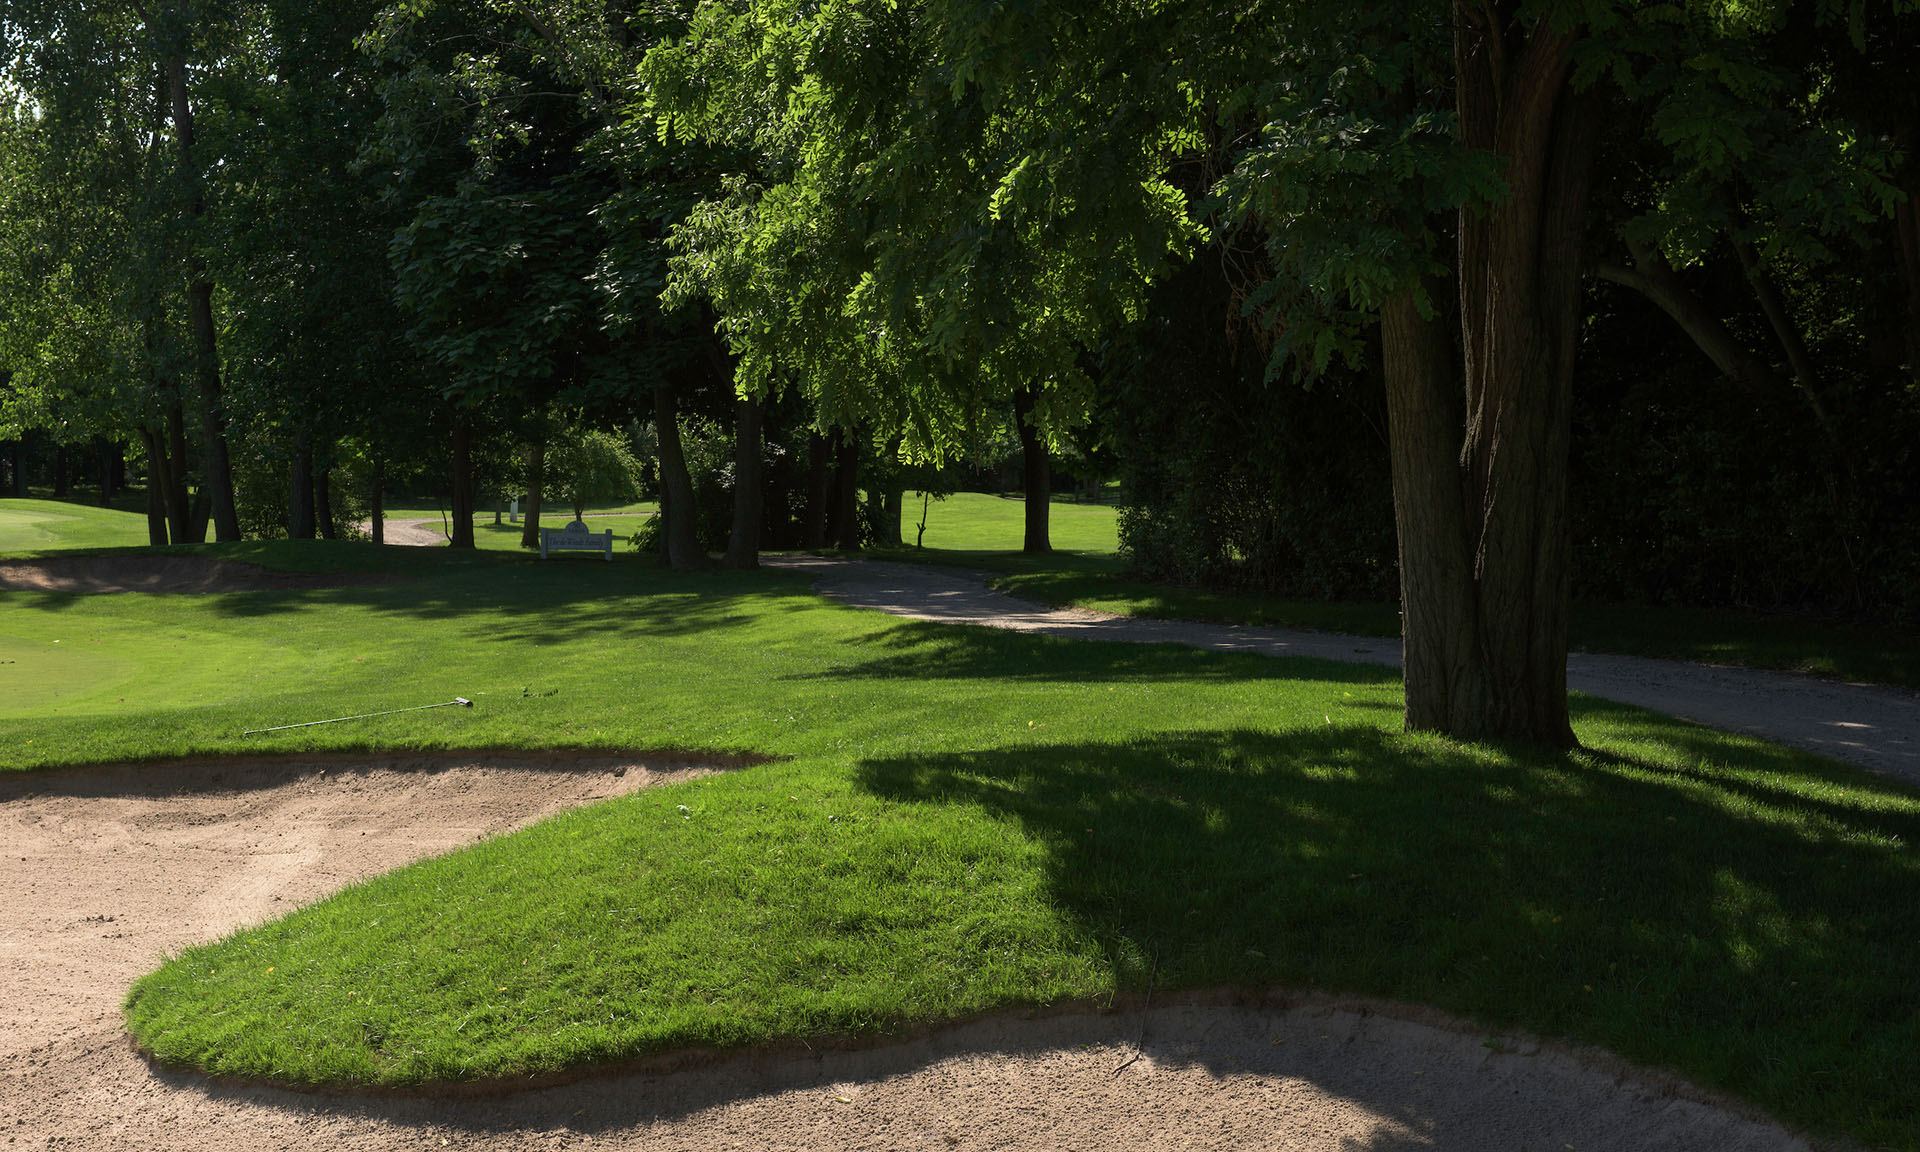 Sandpit, Fairway and Path at Washington Golf Course